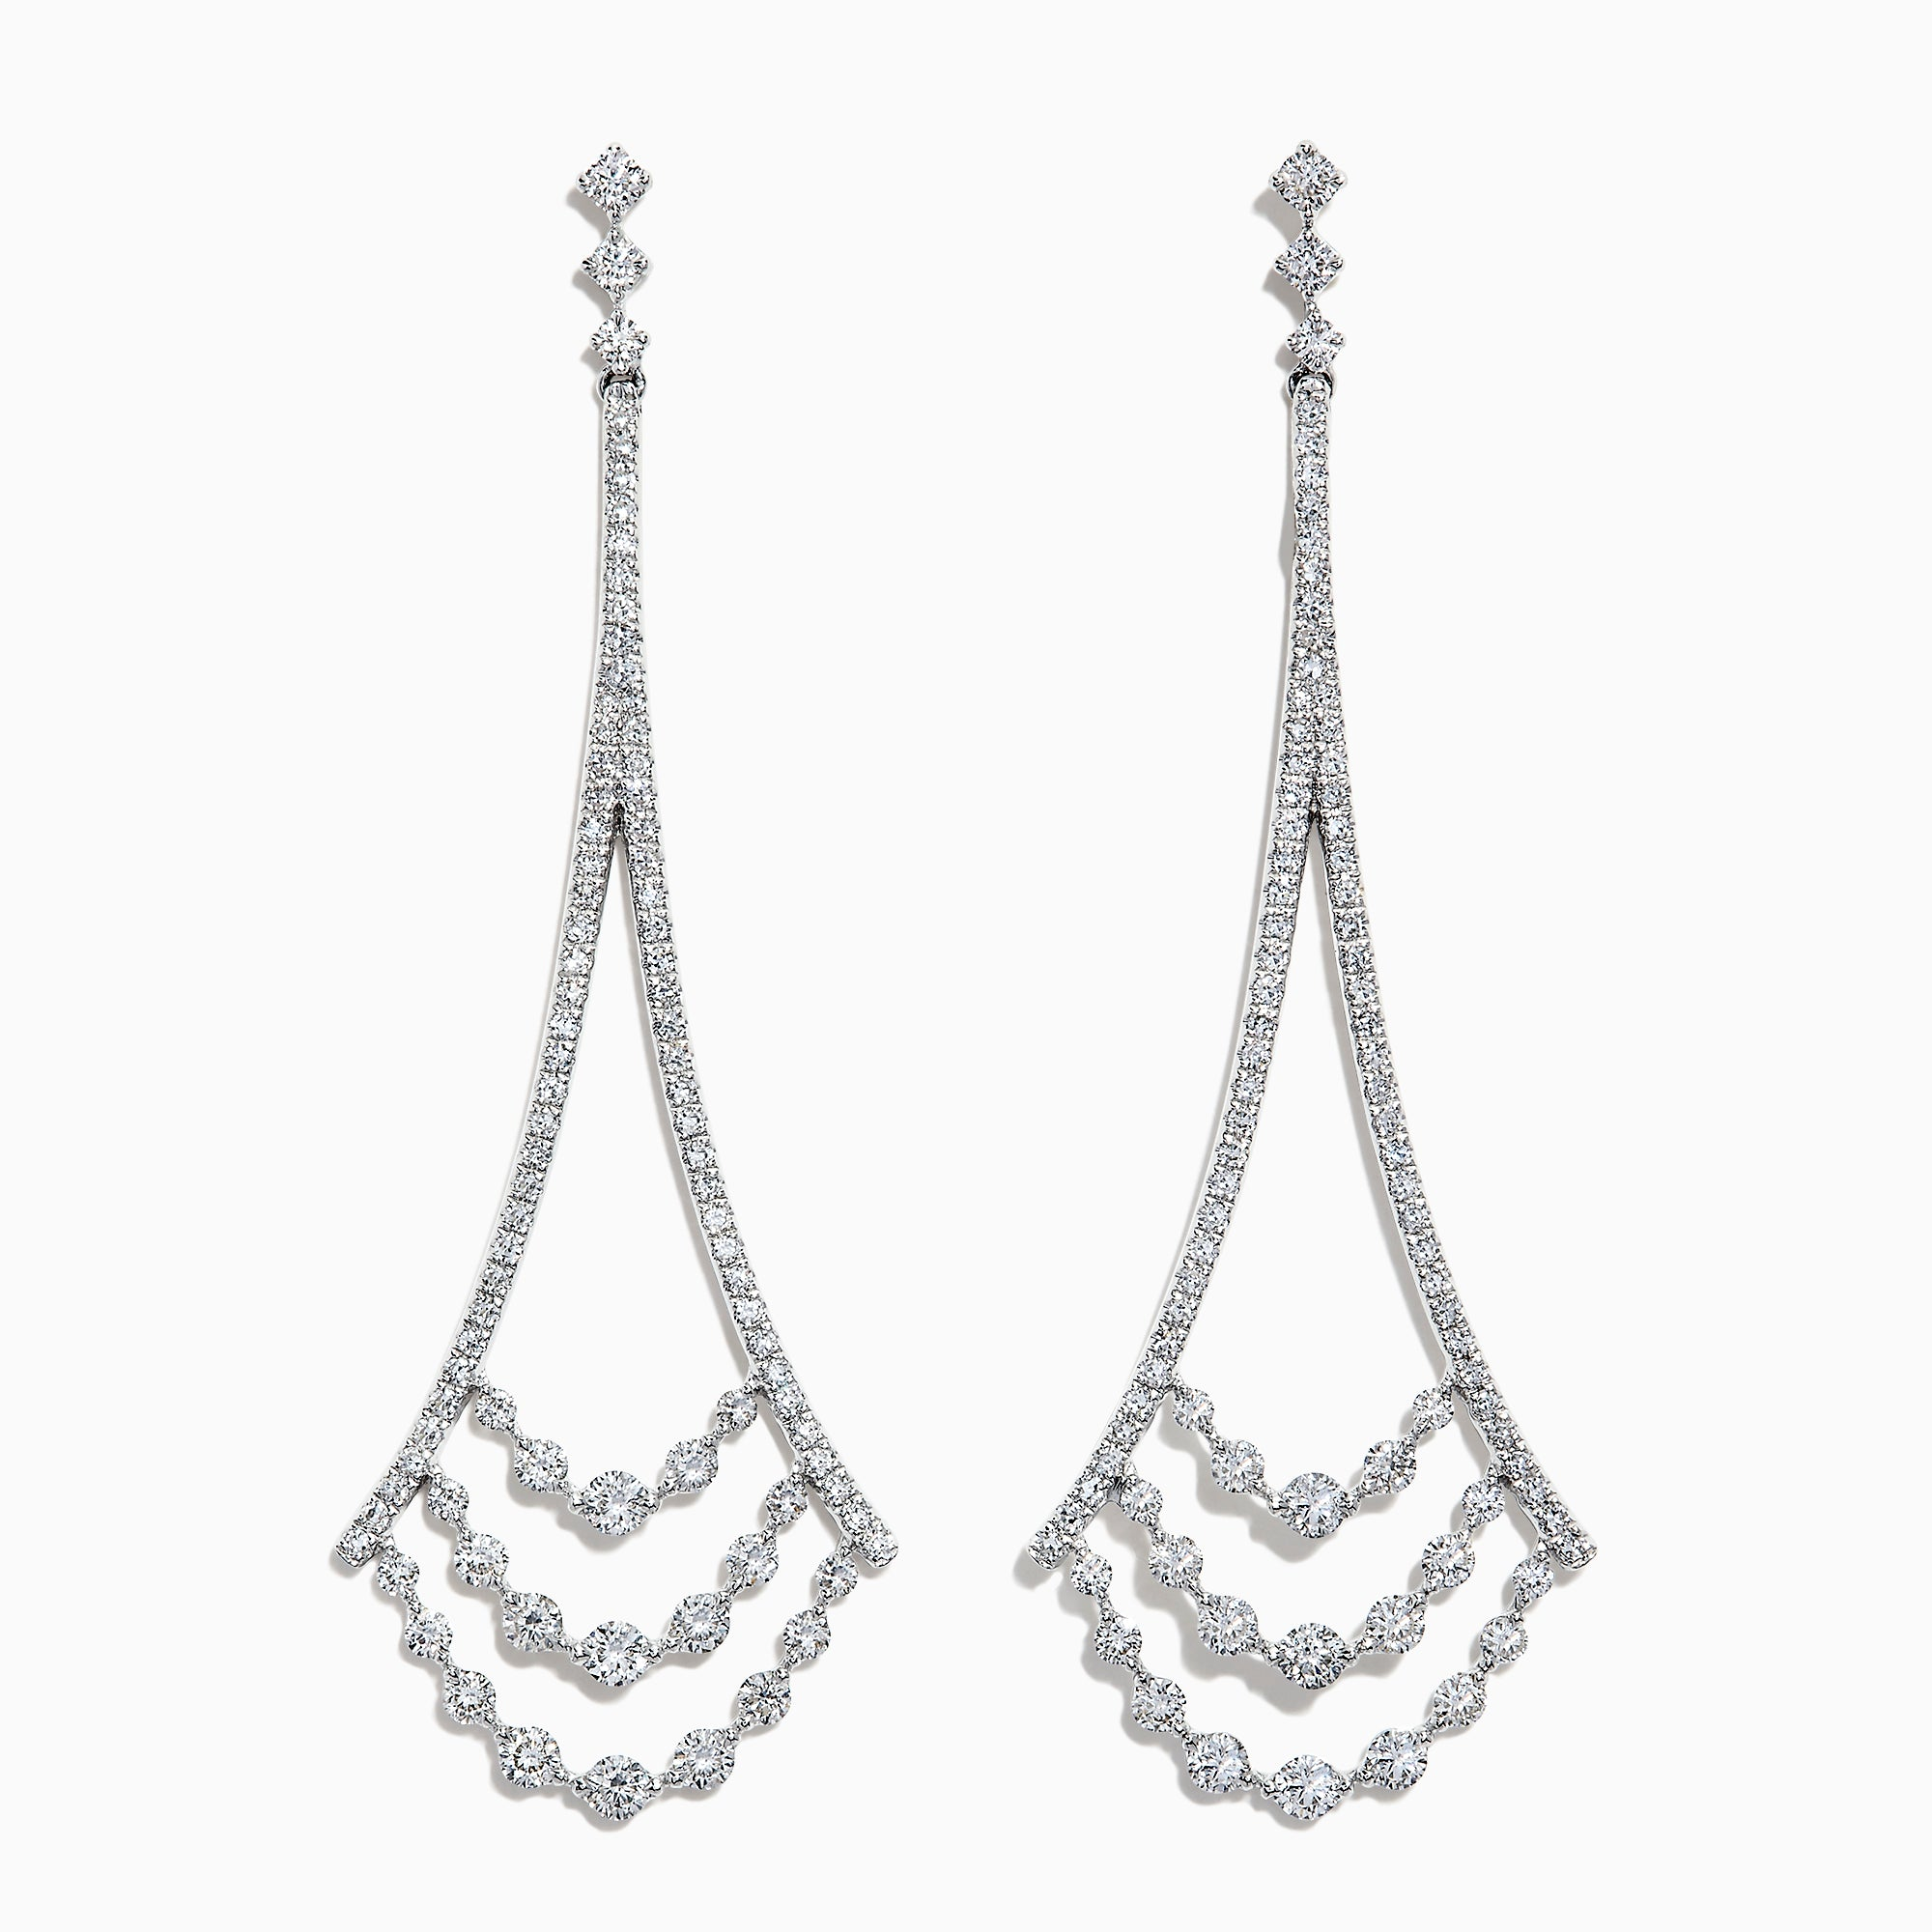 Effy Pave Classica 14K White Gold Diamond Chandelier Earrings, 1.42 TCW